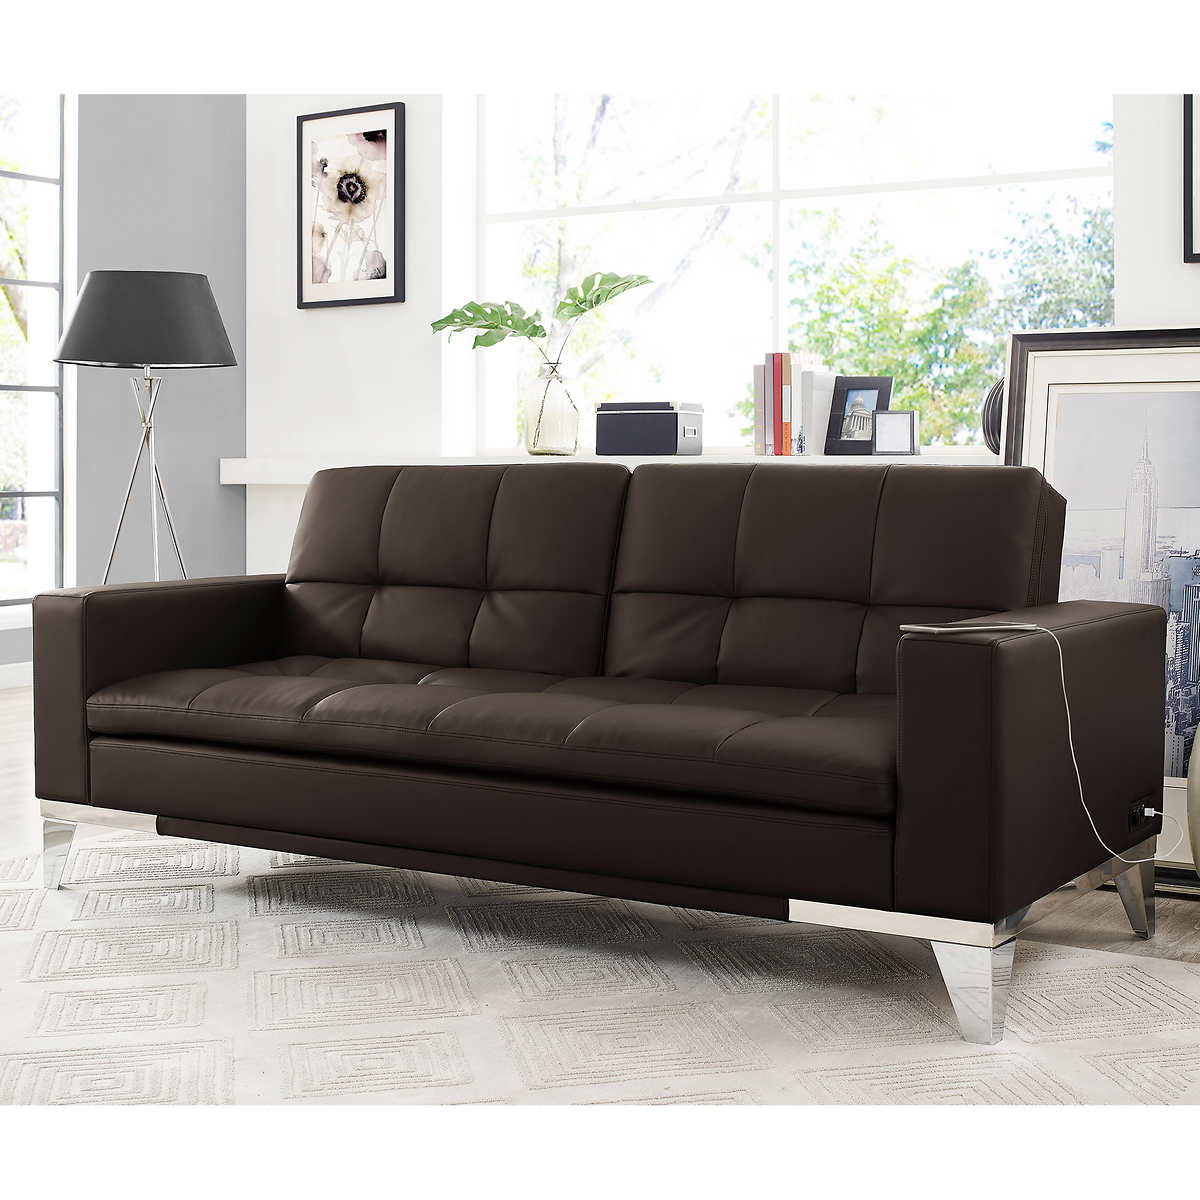 Leather Sofas   Sectionals   Costco Brooklyn Bonded Leather Euro Lounger   Brown. Costco Living Room. Home Design Ideas